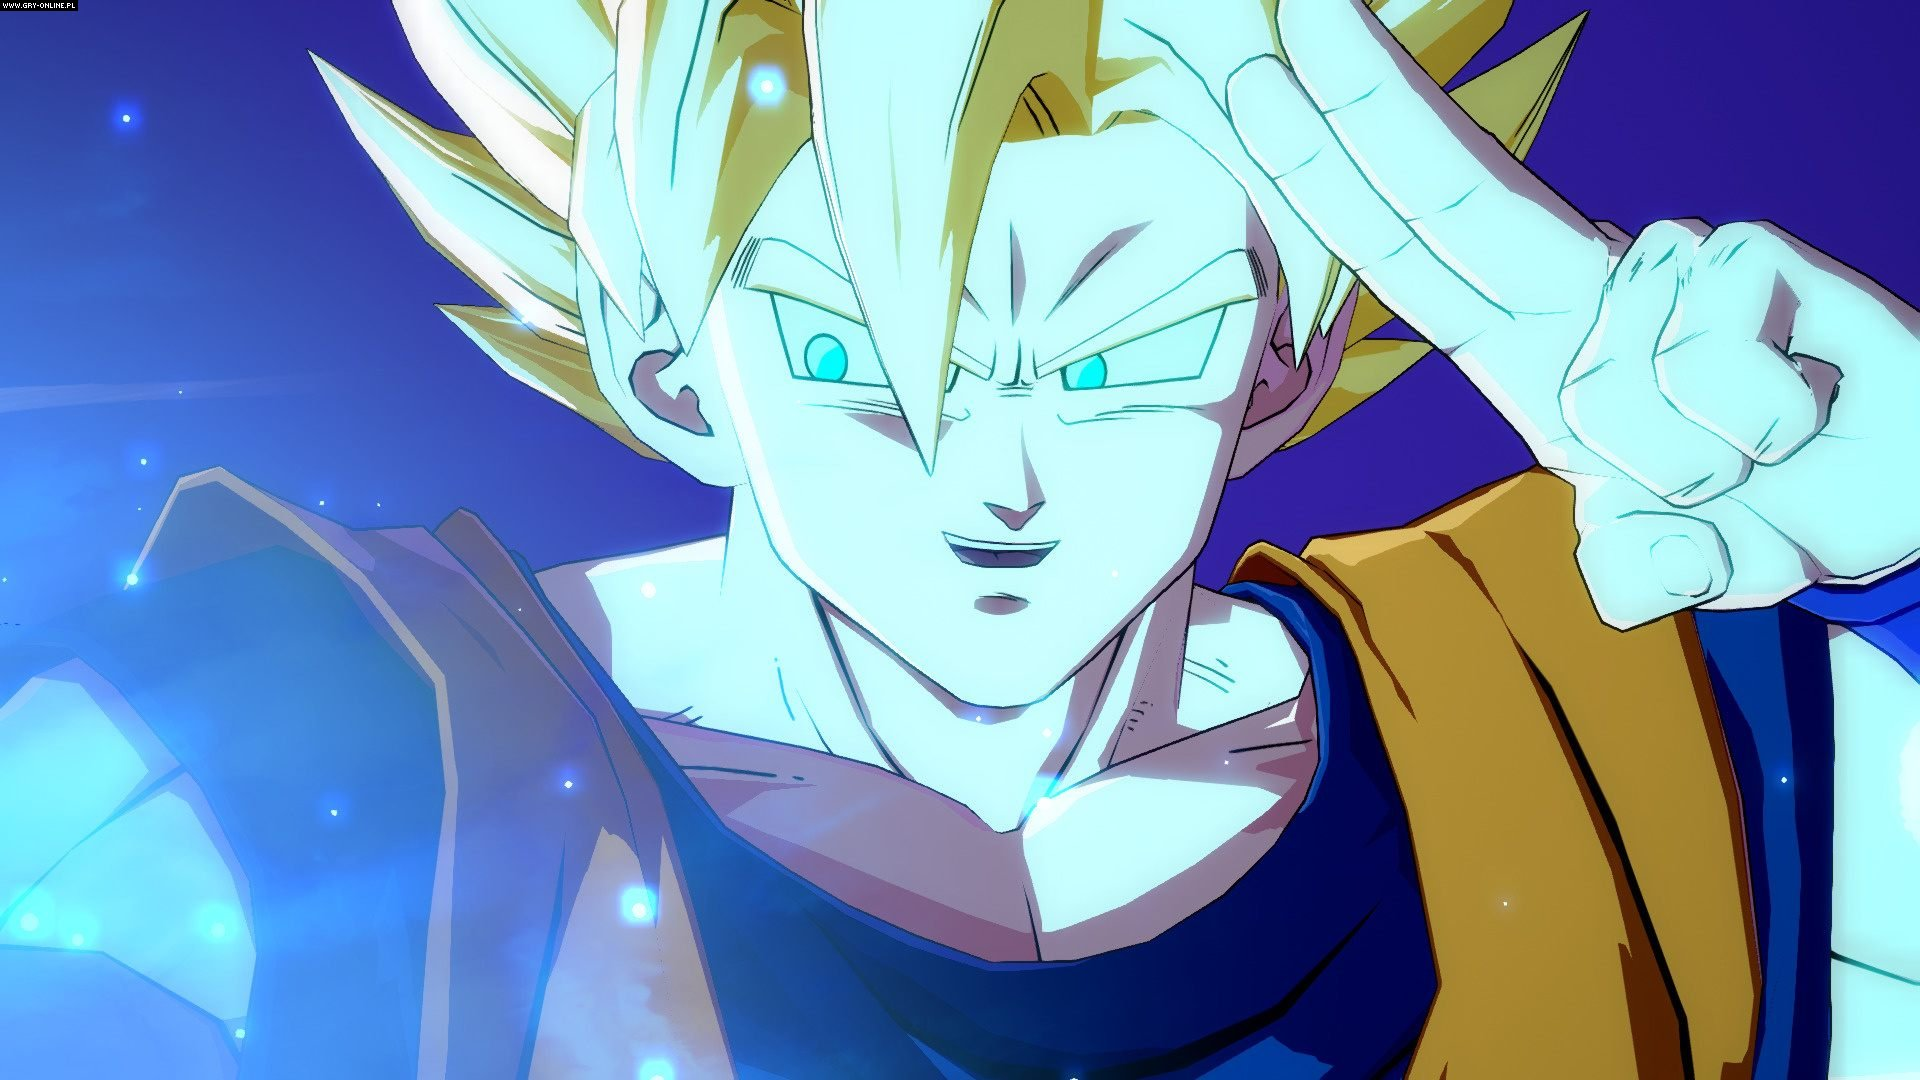 Dragon Ball FighterZ PC, PS4, XONE, Switch Gry Screen 101/230, Arc System Works, Bandai Namco Entertainment